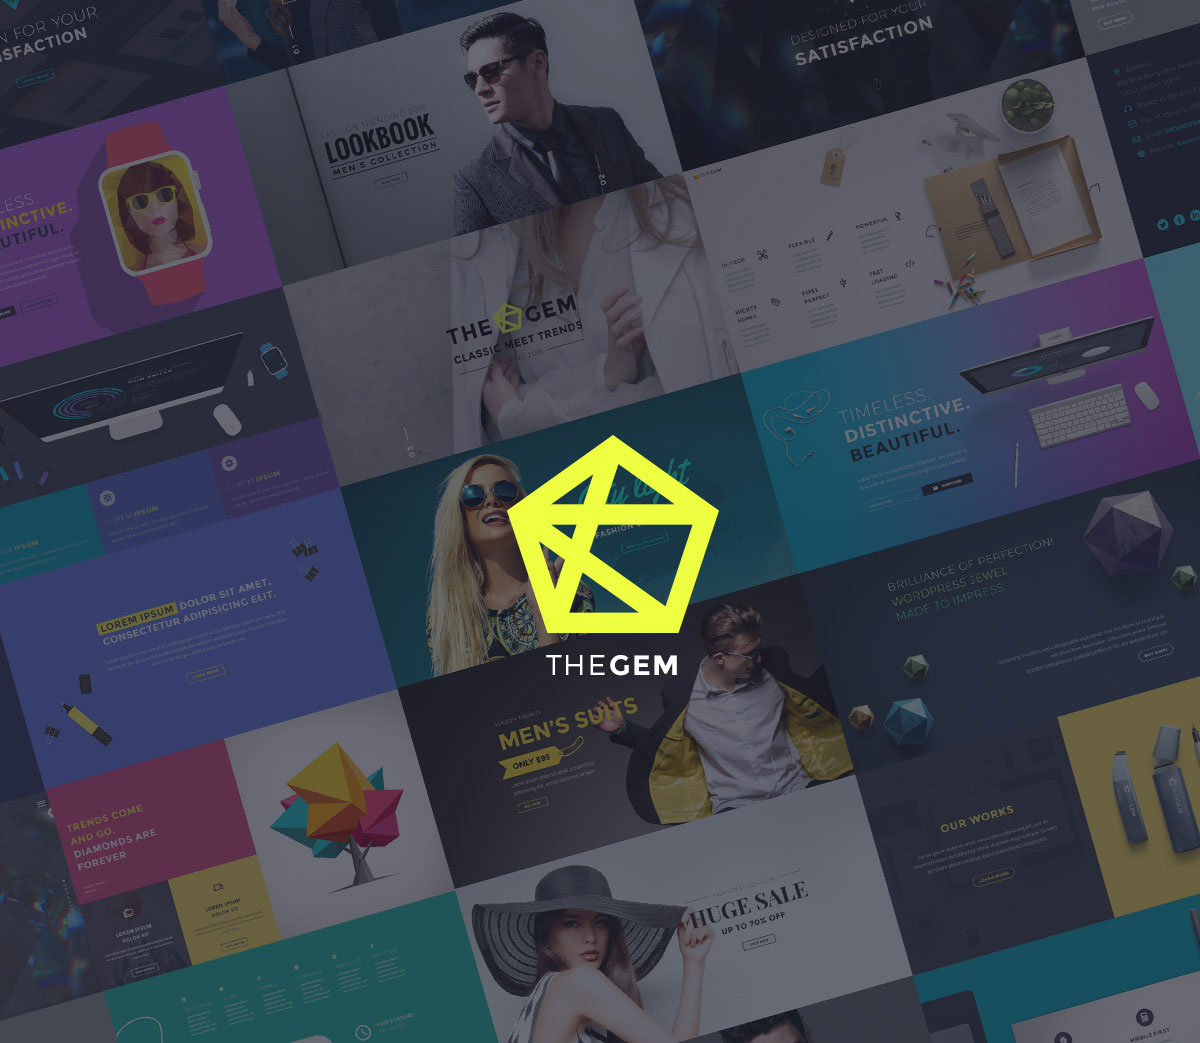 "thegem-fullscreen-business-theme-for-wp ""width ="" 1200 ""height ="" 1043 ""srcset ="" https://cdn.colorlib.com/wp/wp-content/uploads/sites/2/thegem-fullscreen -business-theme-for-wp.jpg 1200w, https://cdn.colorlib.com/wp/wp-content/uploads/sites/2/thegem-fullscreen-business-theme-for-wp-300x261.jpg 300w , https://cdn.colorlib.com/wp/wp-content/uploads/sites/2/thegem-fullscreen-business-theme-for-wp-768x668.jpg 768w, https://cdn.colorlib.com/ wp / wp-content / uploads / sites / 2 / thegem-fullscreen-business-theme-for-wp-1024x890.jpg 1024w ""data-lazy-tailles ="" (largeur maximale: 1200px) 100vw, 1200px ""src ="" https://webypress.fr/wp-content/uploads/2019/03/1552570072_478_30-Meilleurs-themes-WordPress-en-plein-ecran-2019.jpg?is-pending-load=1 ""srcset ="" data: image / gif; base64, R0lGODlhAQABAIAAAAAAAP /// yH5BAEAAAAALAAAAAABAAAAAAIBRAA7 ""/></p> <p><noscript><img class="